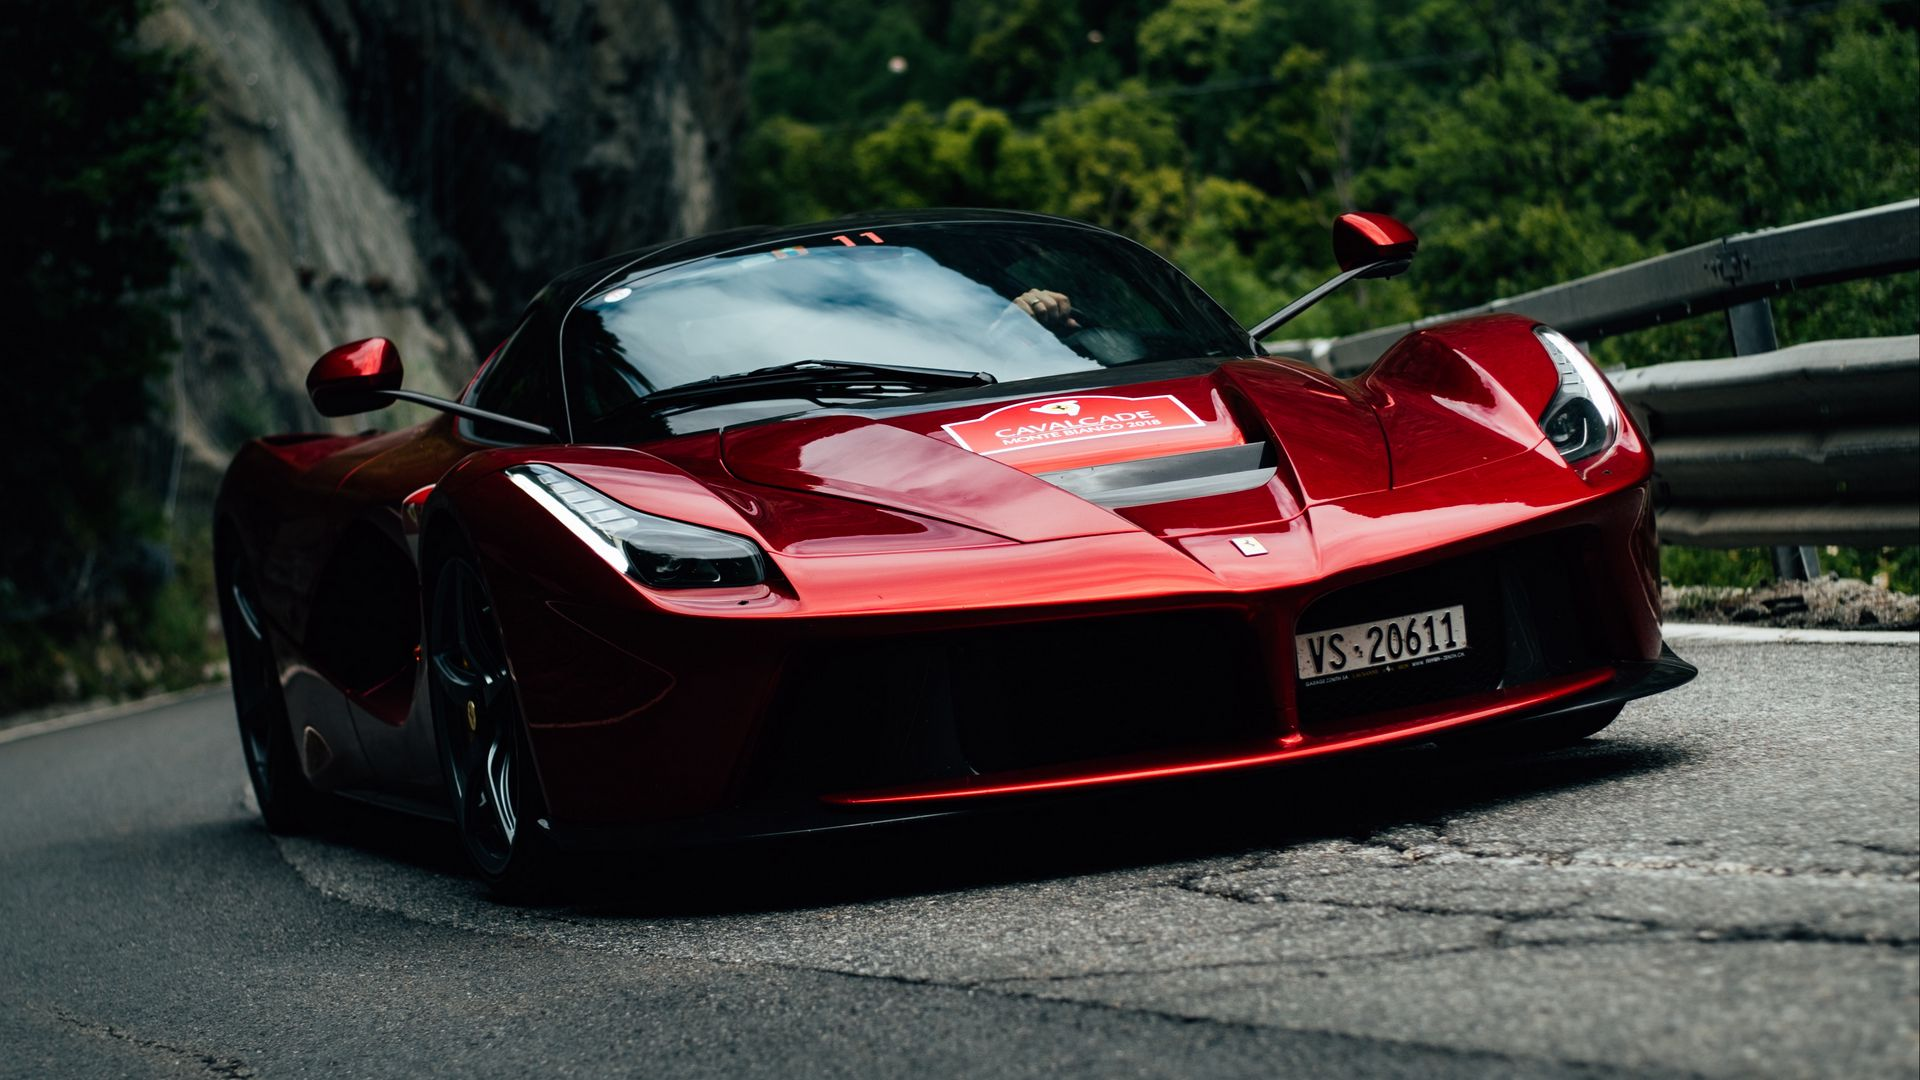 The Best Wallpapers Related to Laferrari, Ferrari F70, Sports Car